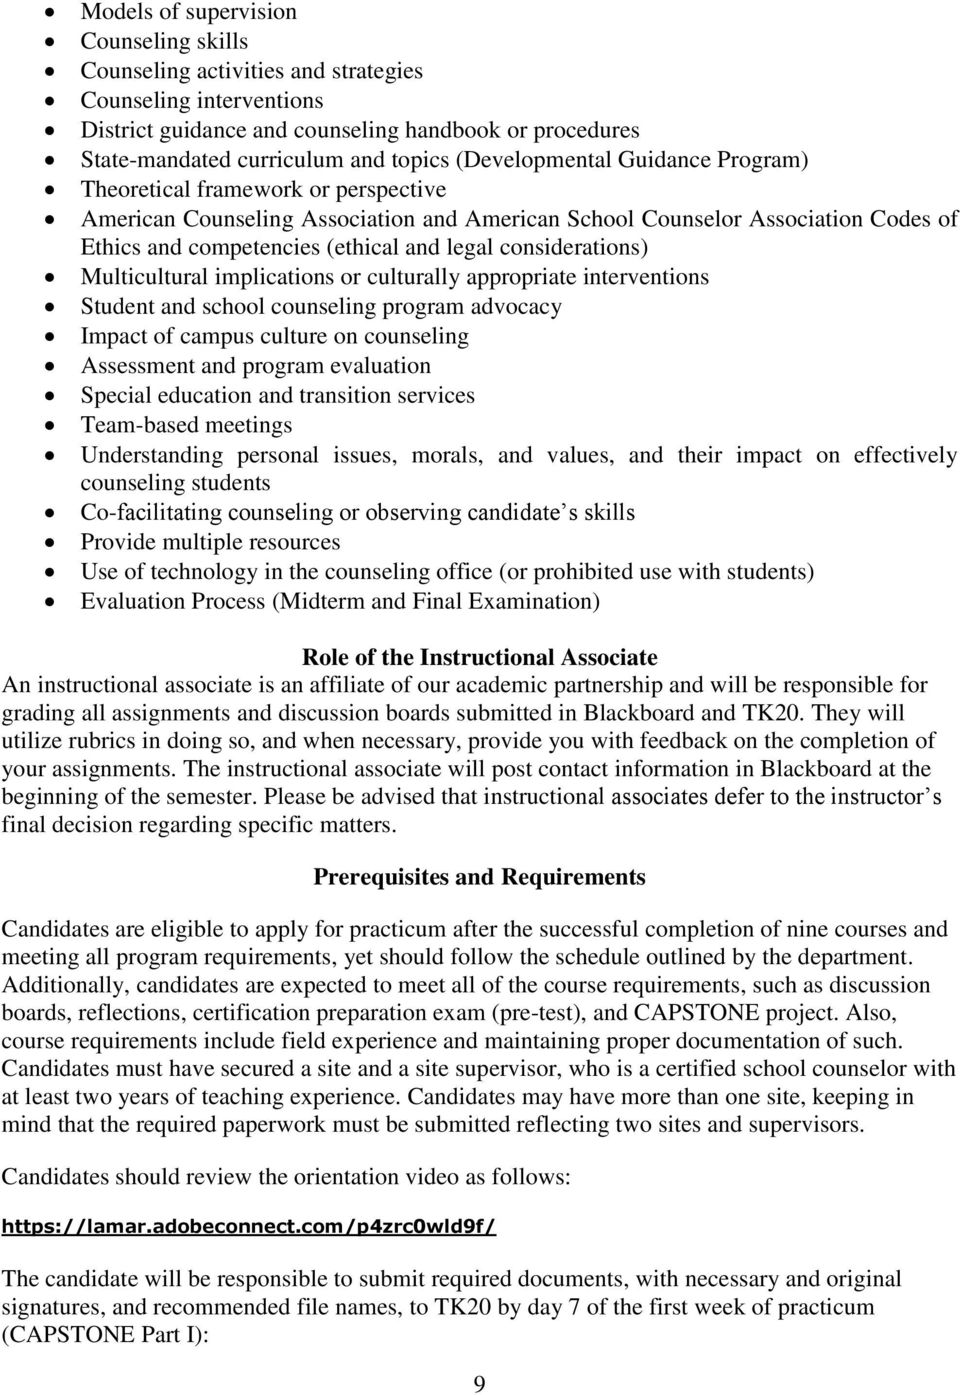 considerations) Multicultural implications or culturally appropriate interventions Student and school counseling program advocacy Impact of campus culture on counseling Assessment and program